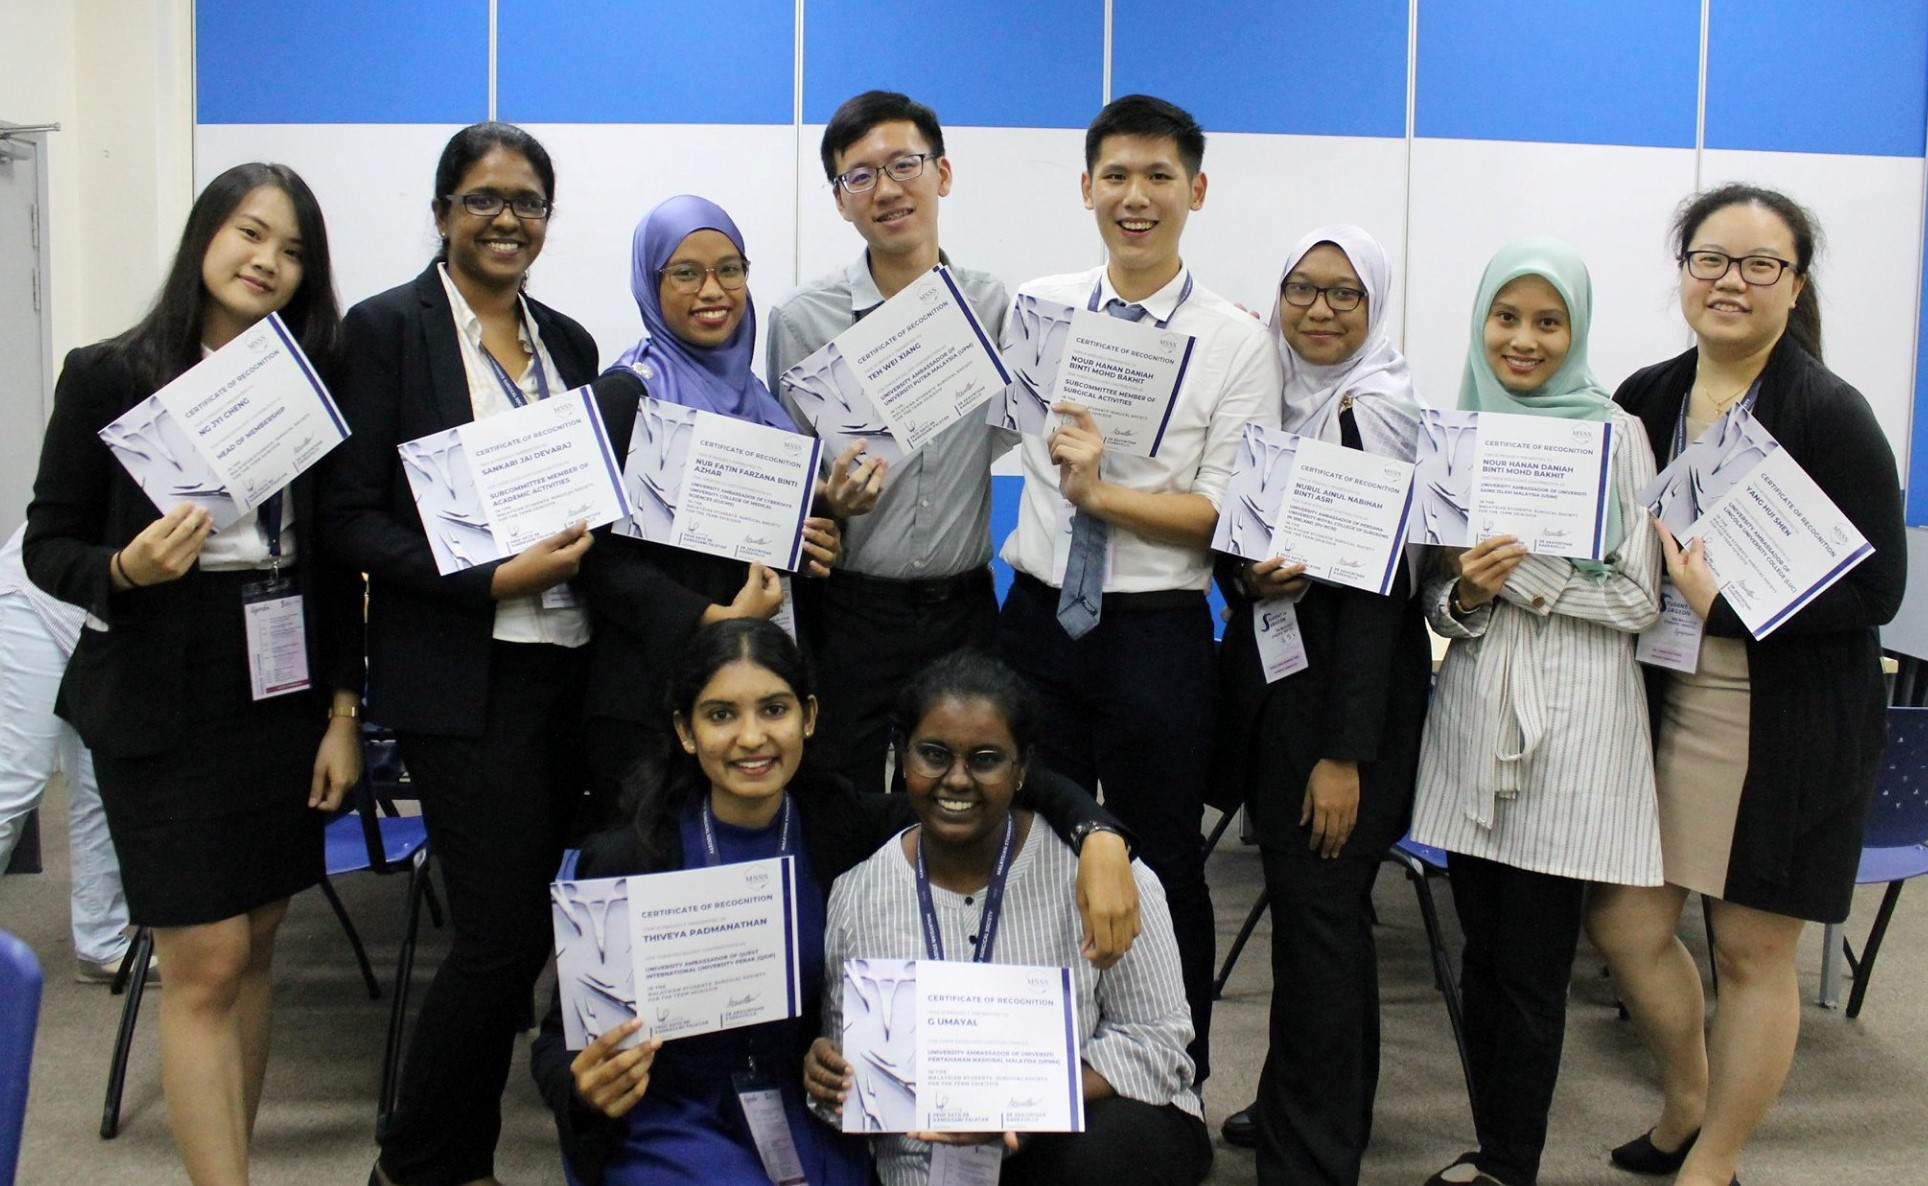 A student symposium with speeches, talks, sharing sessions and hands-on workshops at IMU Clinical Campus Seremban.